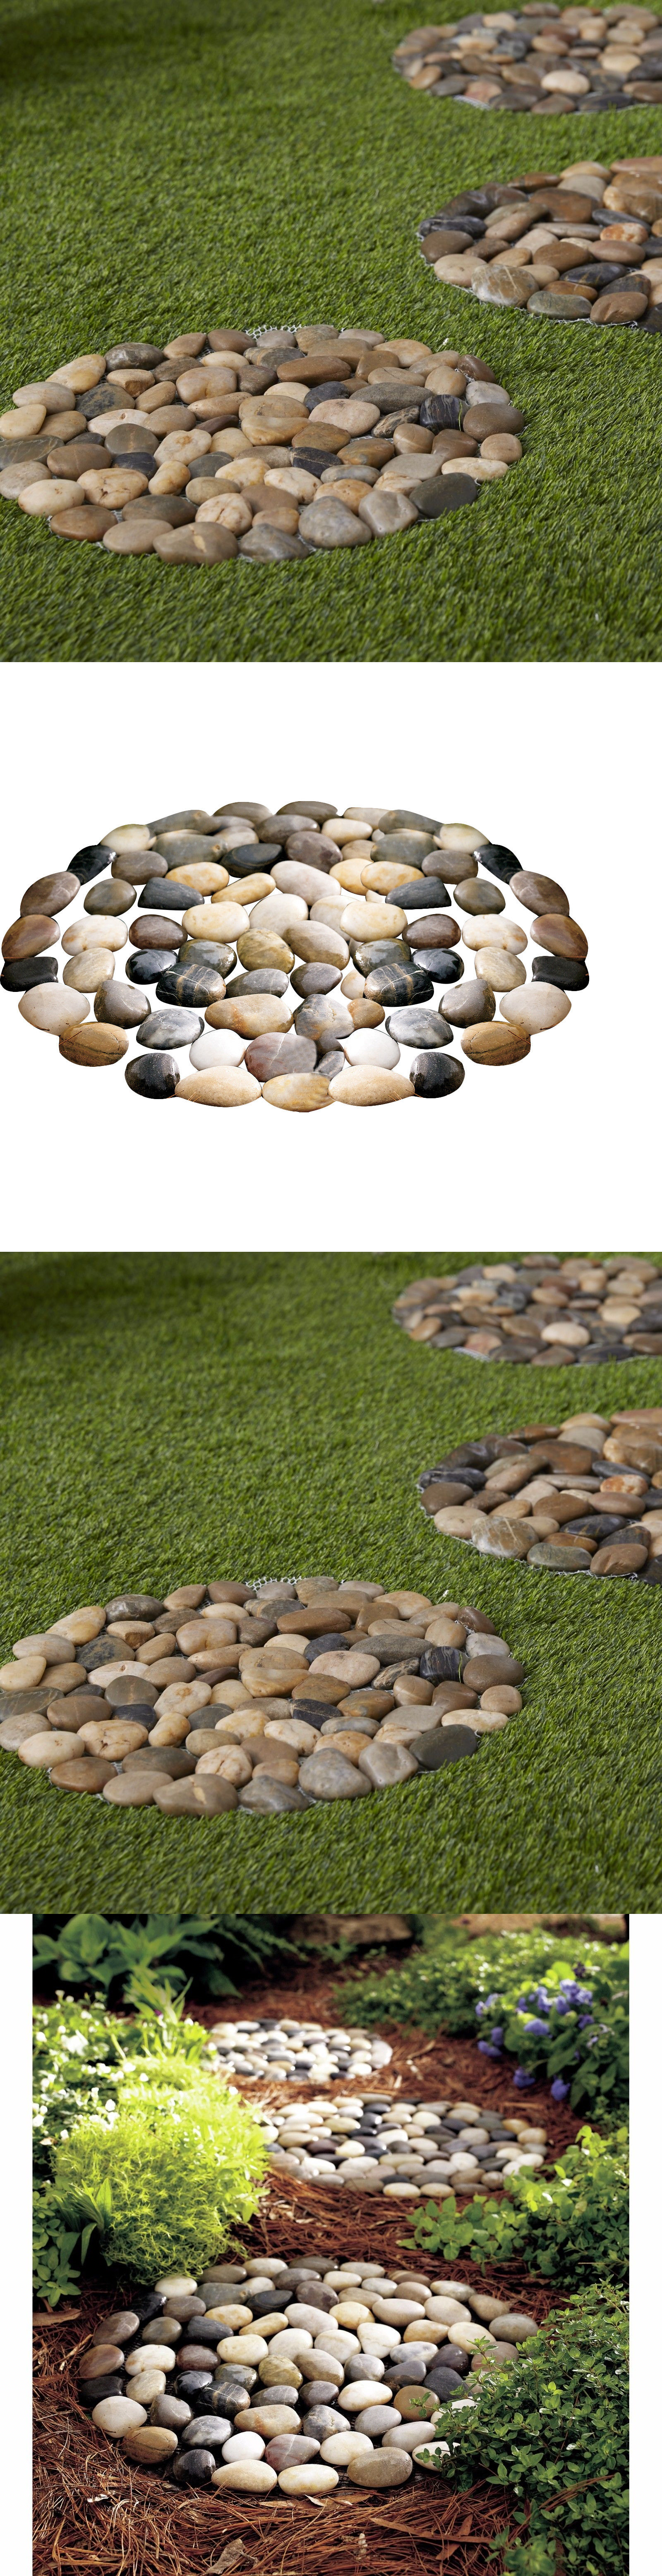 Inspirational Stones for Yard Decoration